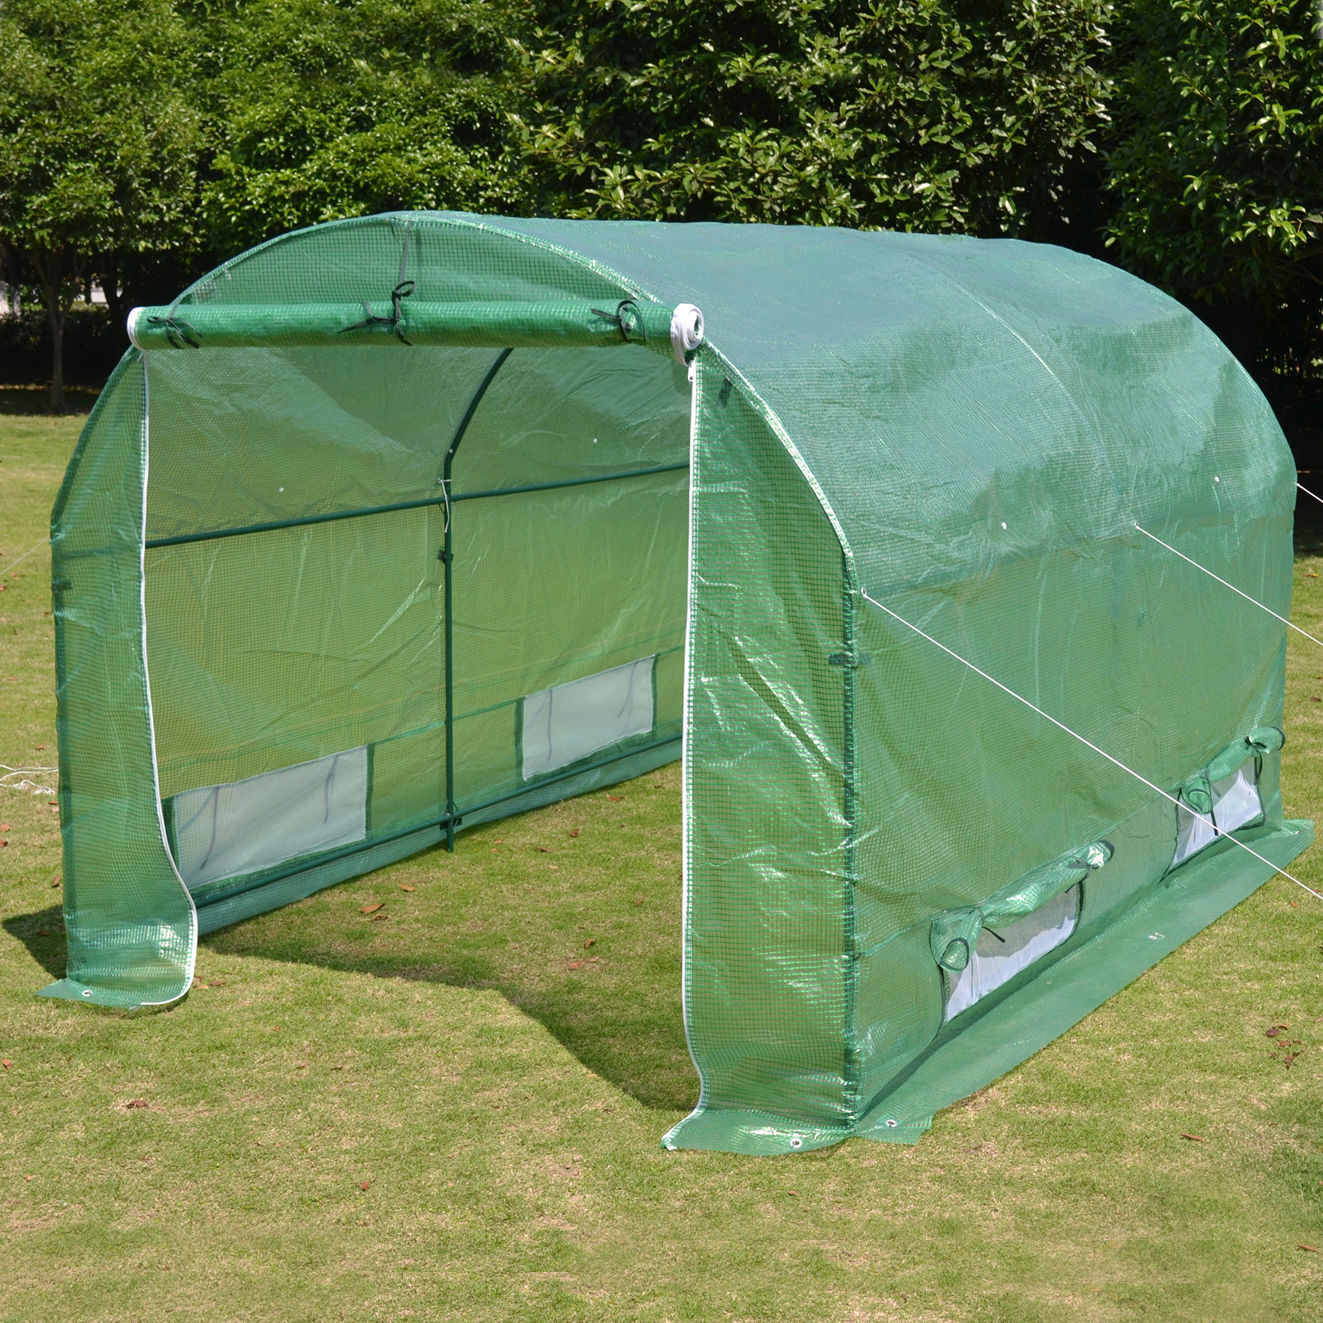 10 x 7 x 6 portable greenhouse canopy for 10x10 roll up door for sale